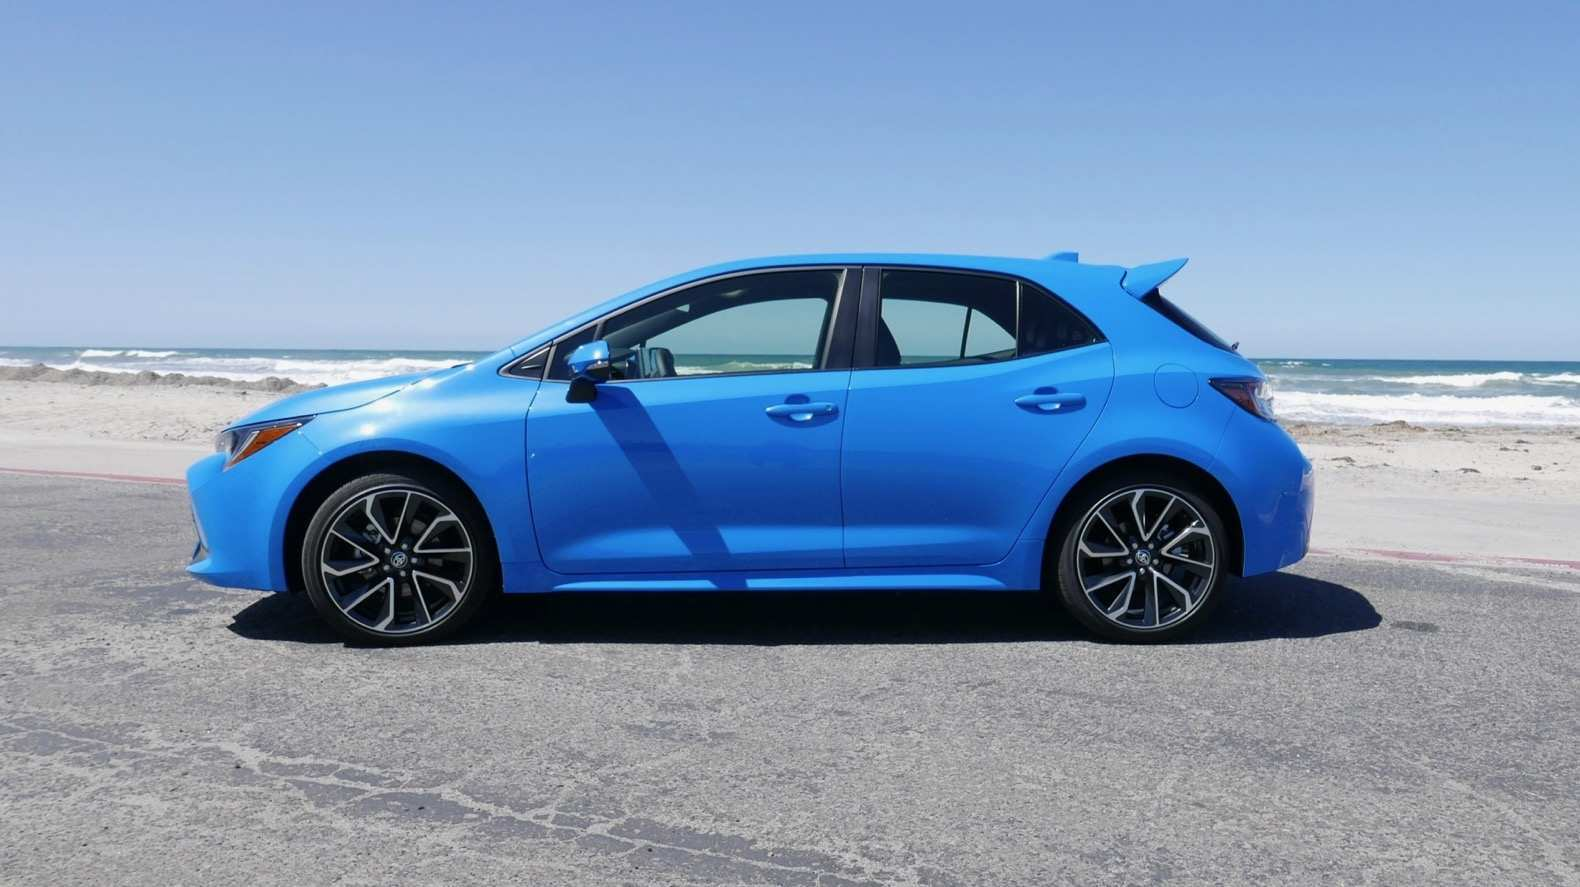 38 Gallery of 2019 Toyota Corolla Hatchback Review Performance for 2019 Toyota Corolla Hatchback Review